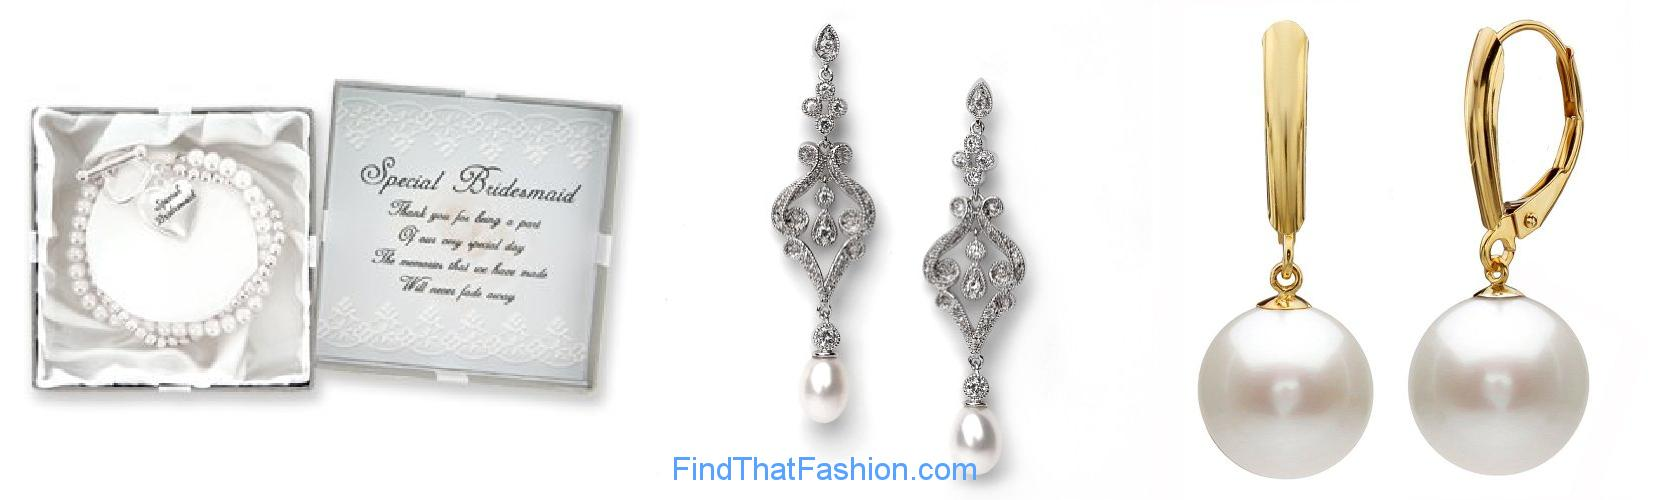 Bridesmaid Wedding Jewelry